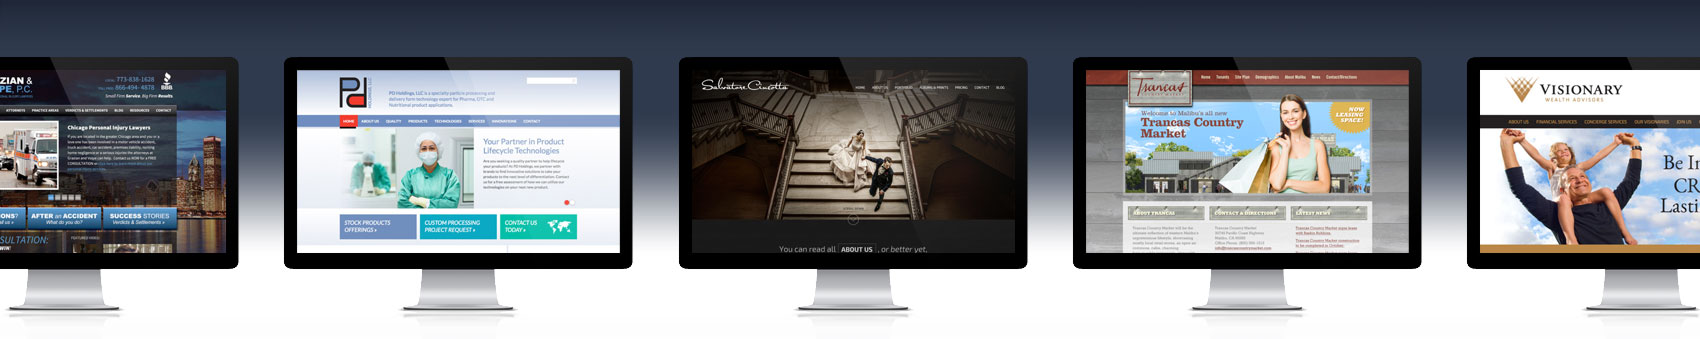 St. Louis web design banner